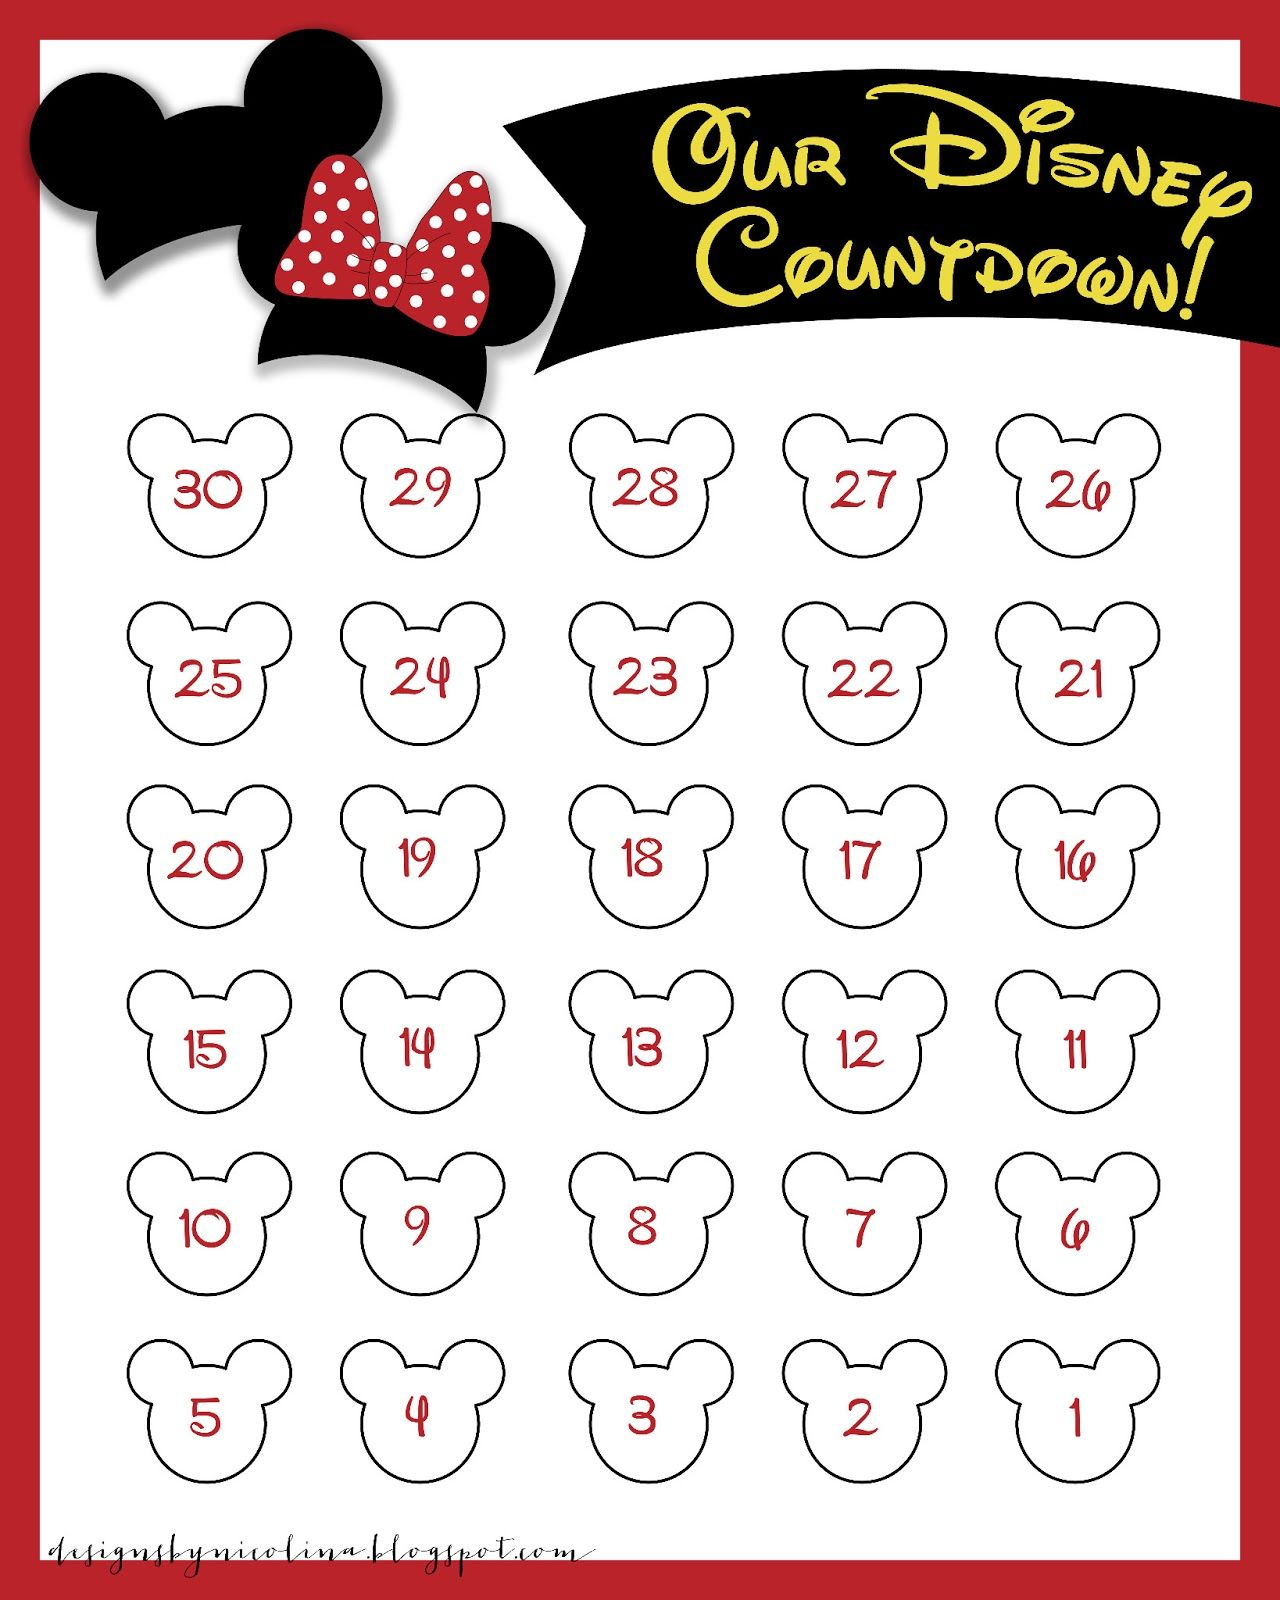 Disneyland Countdown Calendar | Designs By Nicolina: Disney pertaining to Disney Countdown Calendar Printable